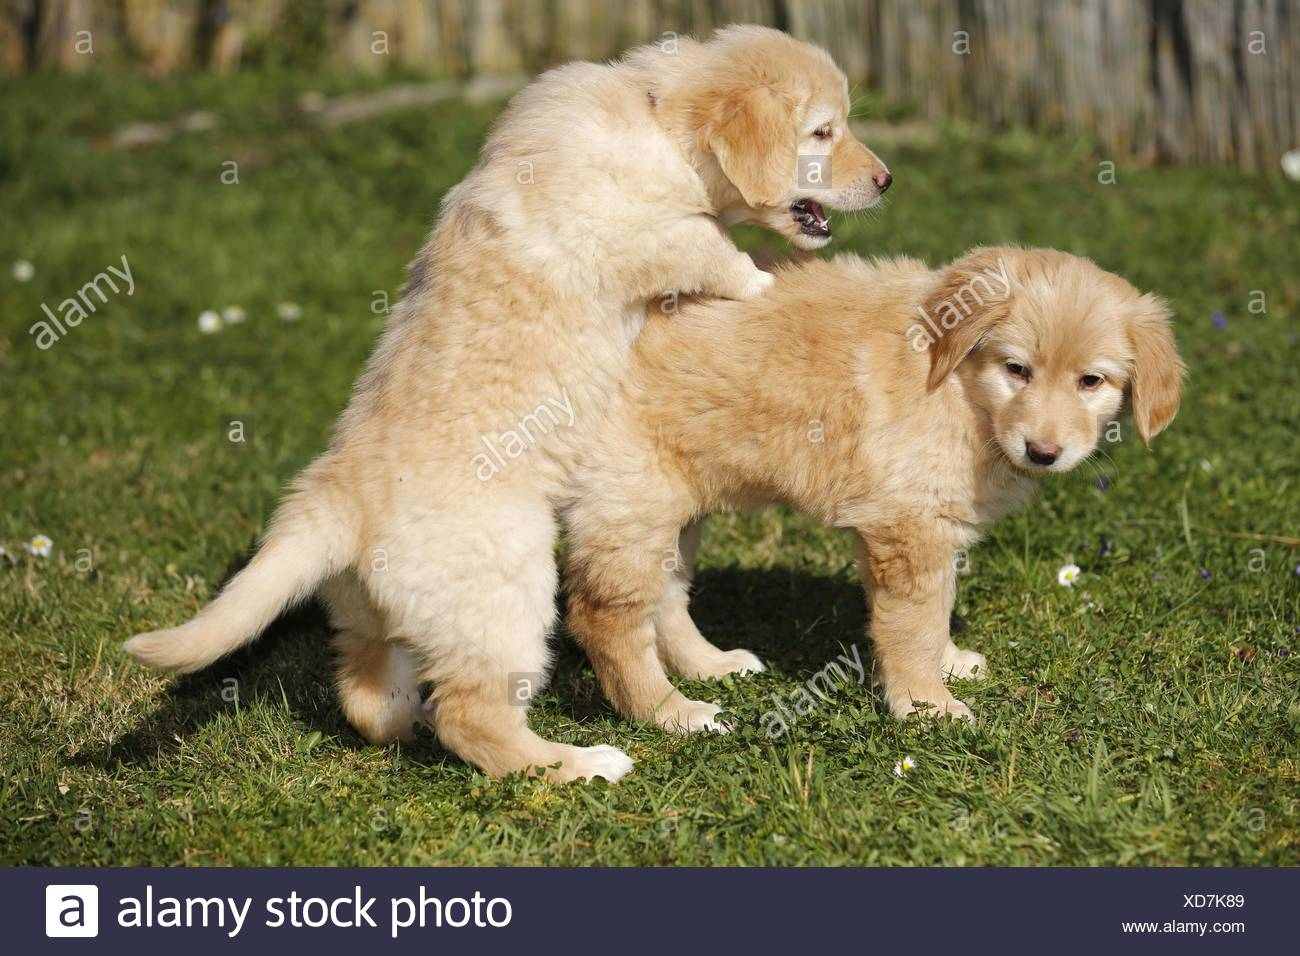 Hovawart Puppies Stock Photo Alamy